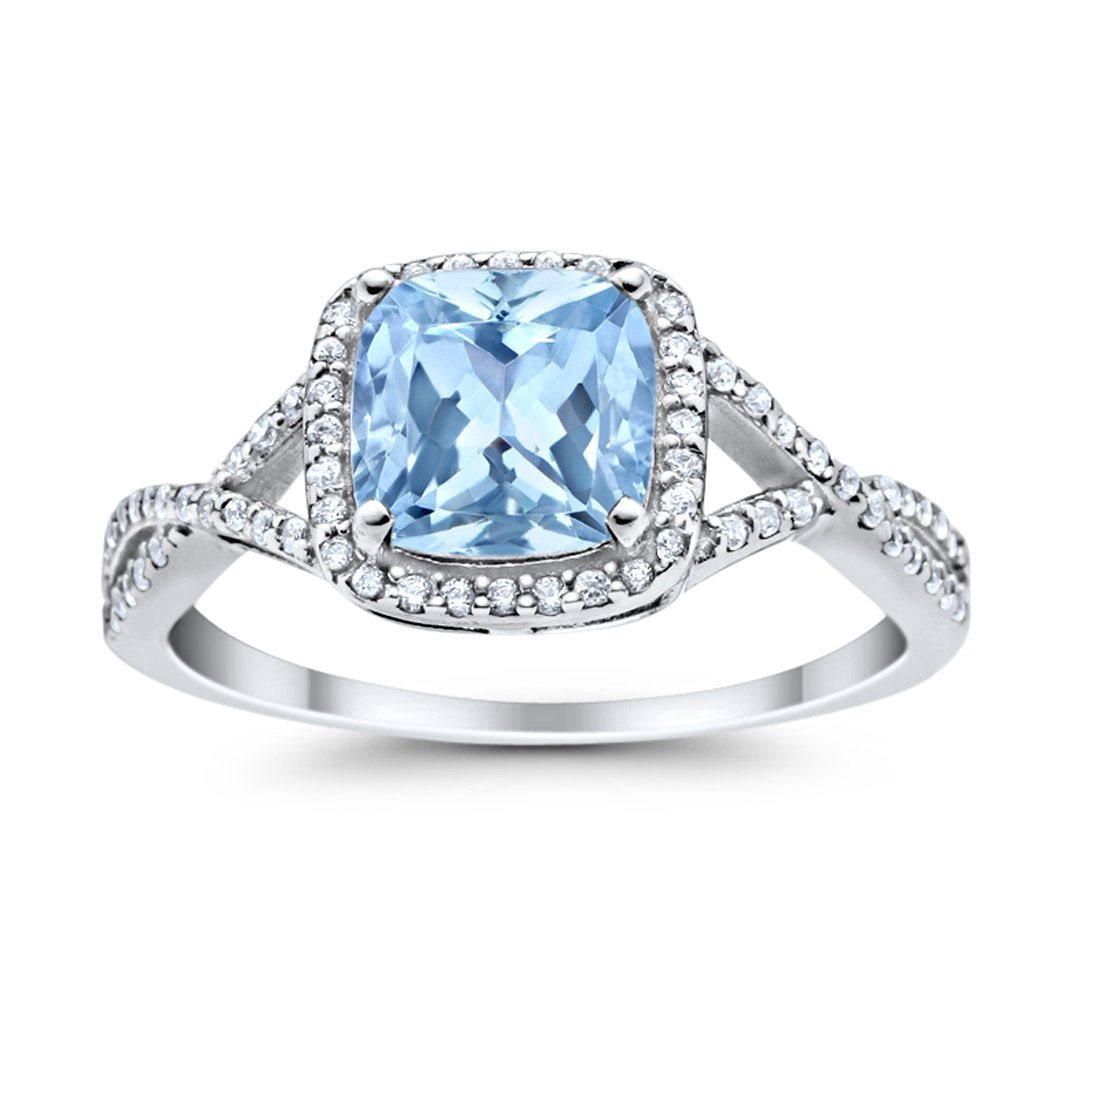 Halo Infinity Shank Engagement Ring Cushion Round Simulated Aquamarine CZ 925 Sterling Silver